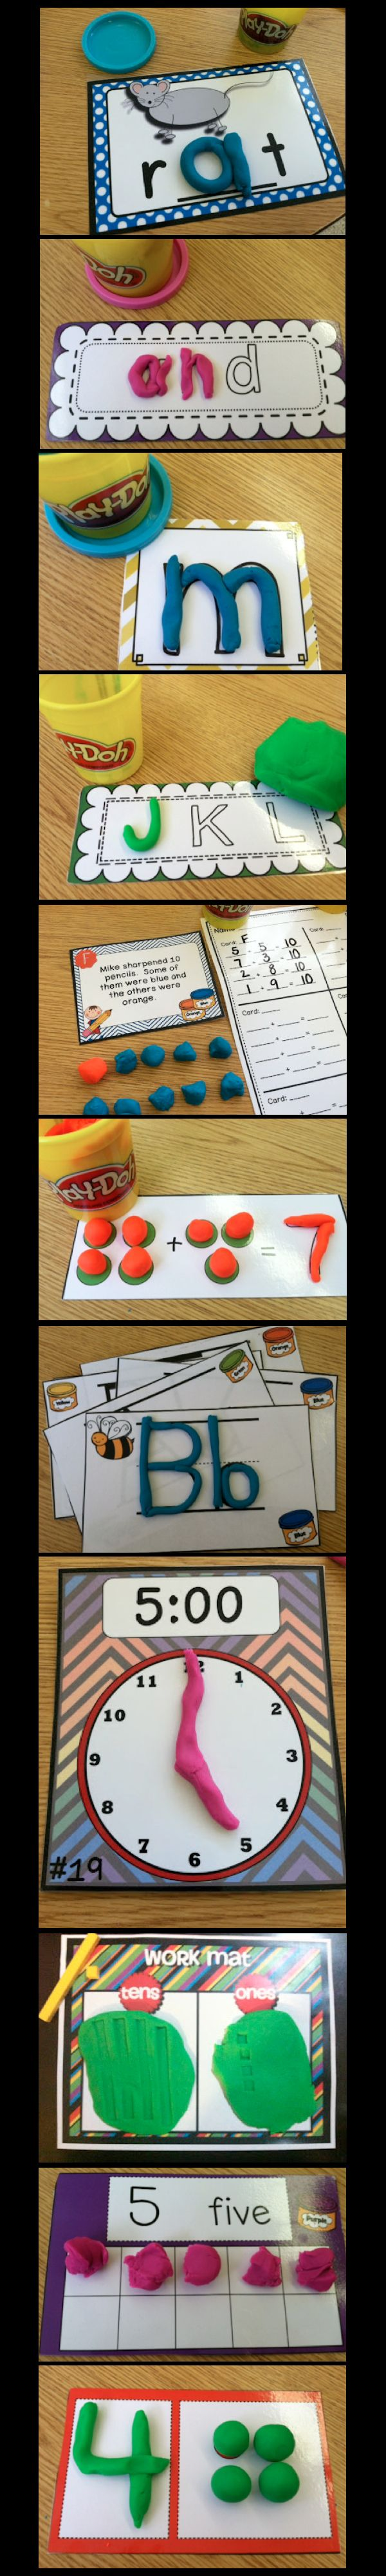 Great Ideas on Using Play-doh in the classroom.... keep learning fun! Primary Possibilities. This is a great way to teach number, time, and many other concepts. It helps the students be hand on with learning. However, the play doe could get messy.